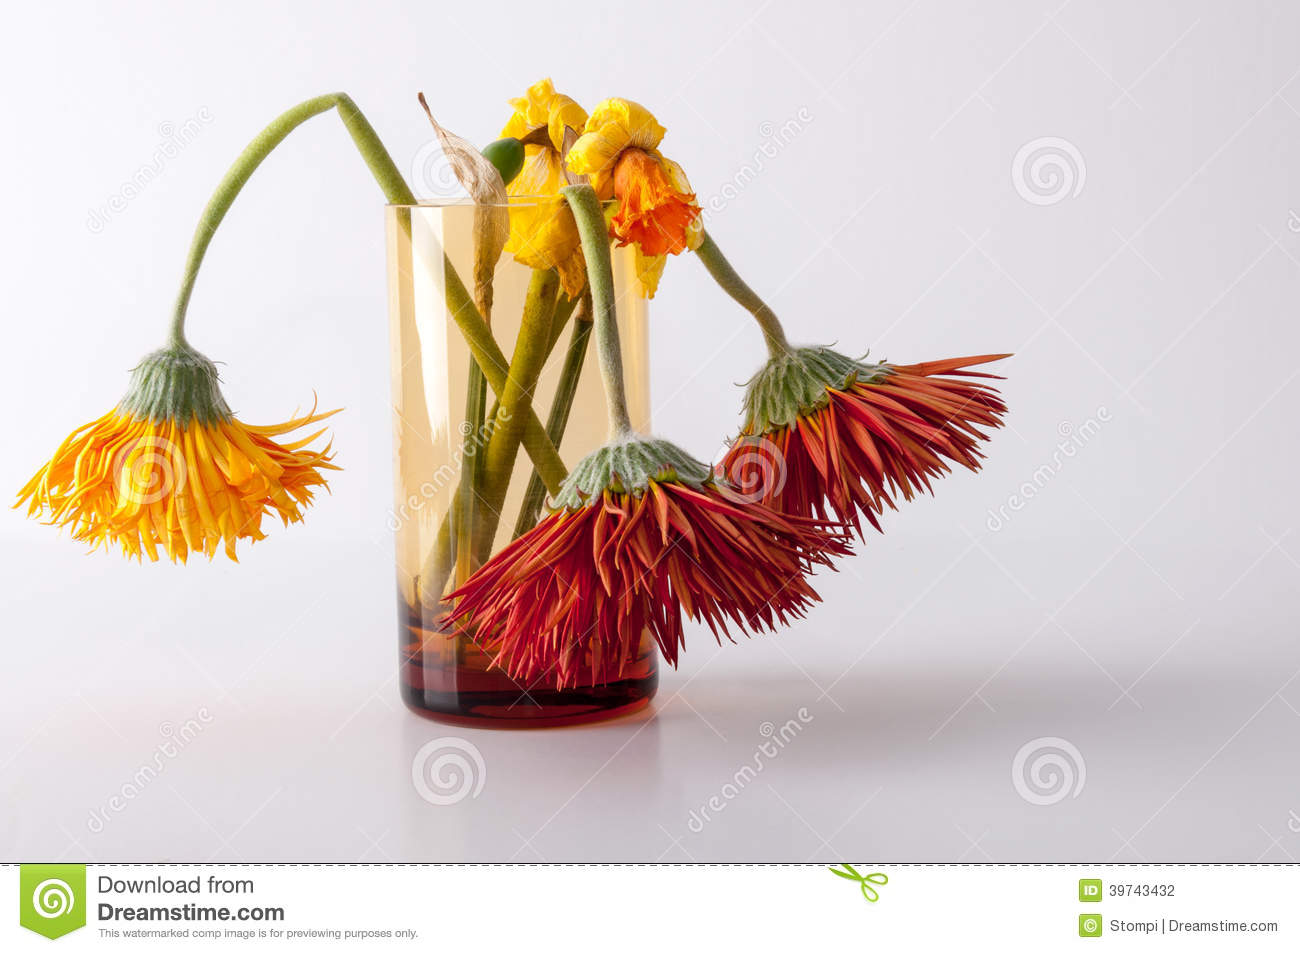 Withered flowers stock photo. Image of glass, flowers - 39743432